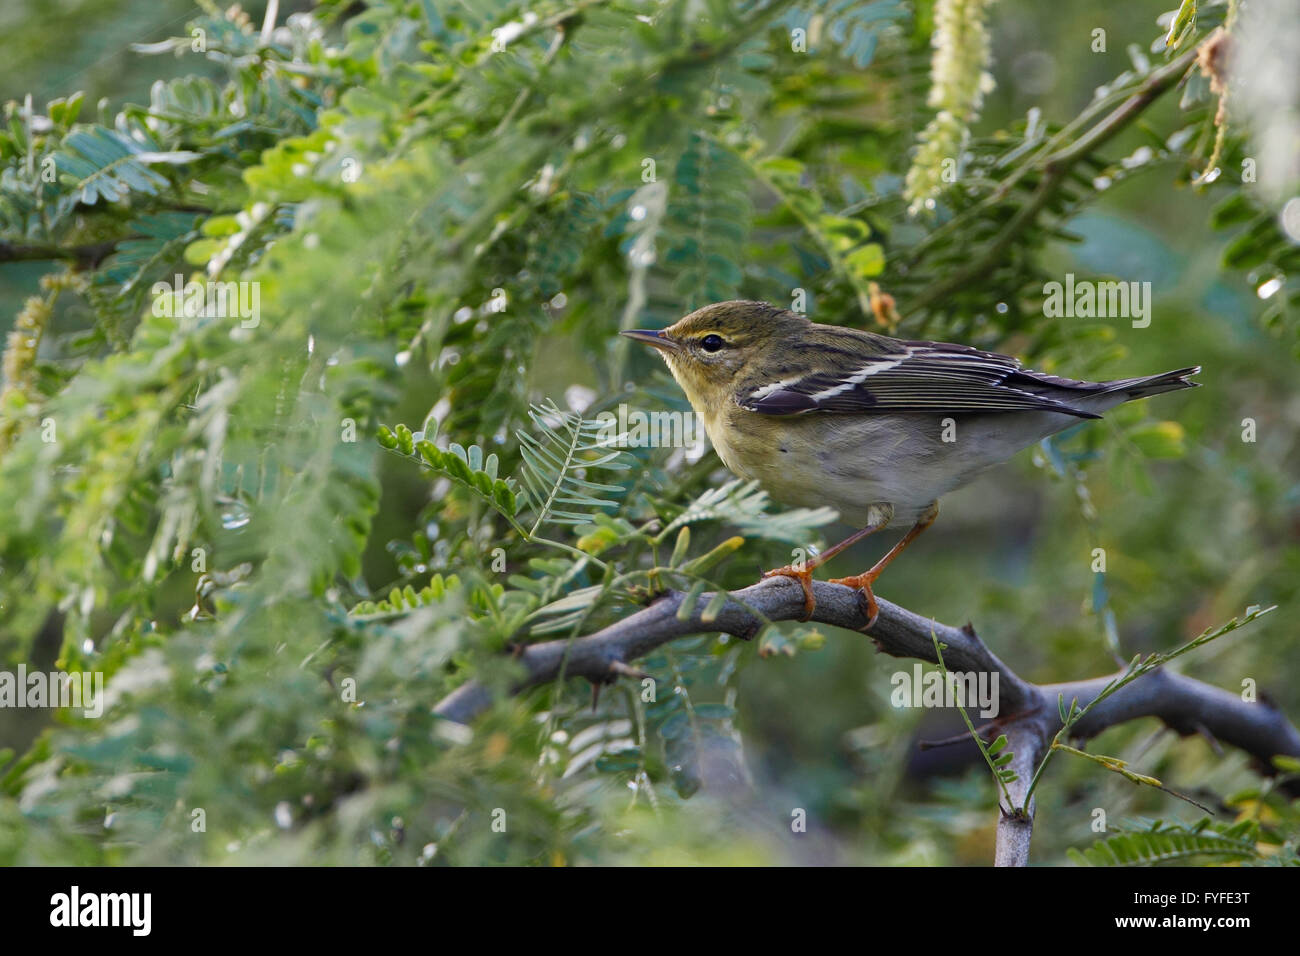 Blackpoll Warbler (Setophaga striata) foraging in bushes, Guanica Dry Forest, Puerto Rico - Stock Image